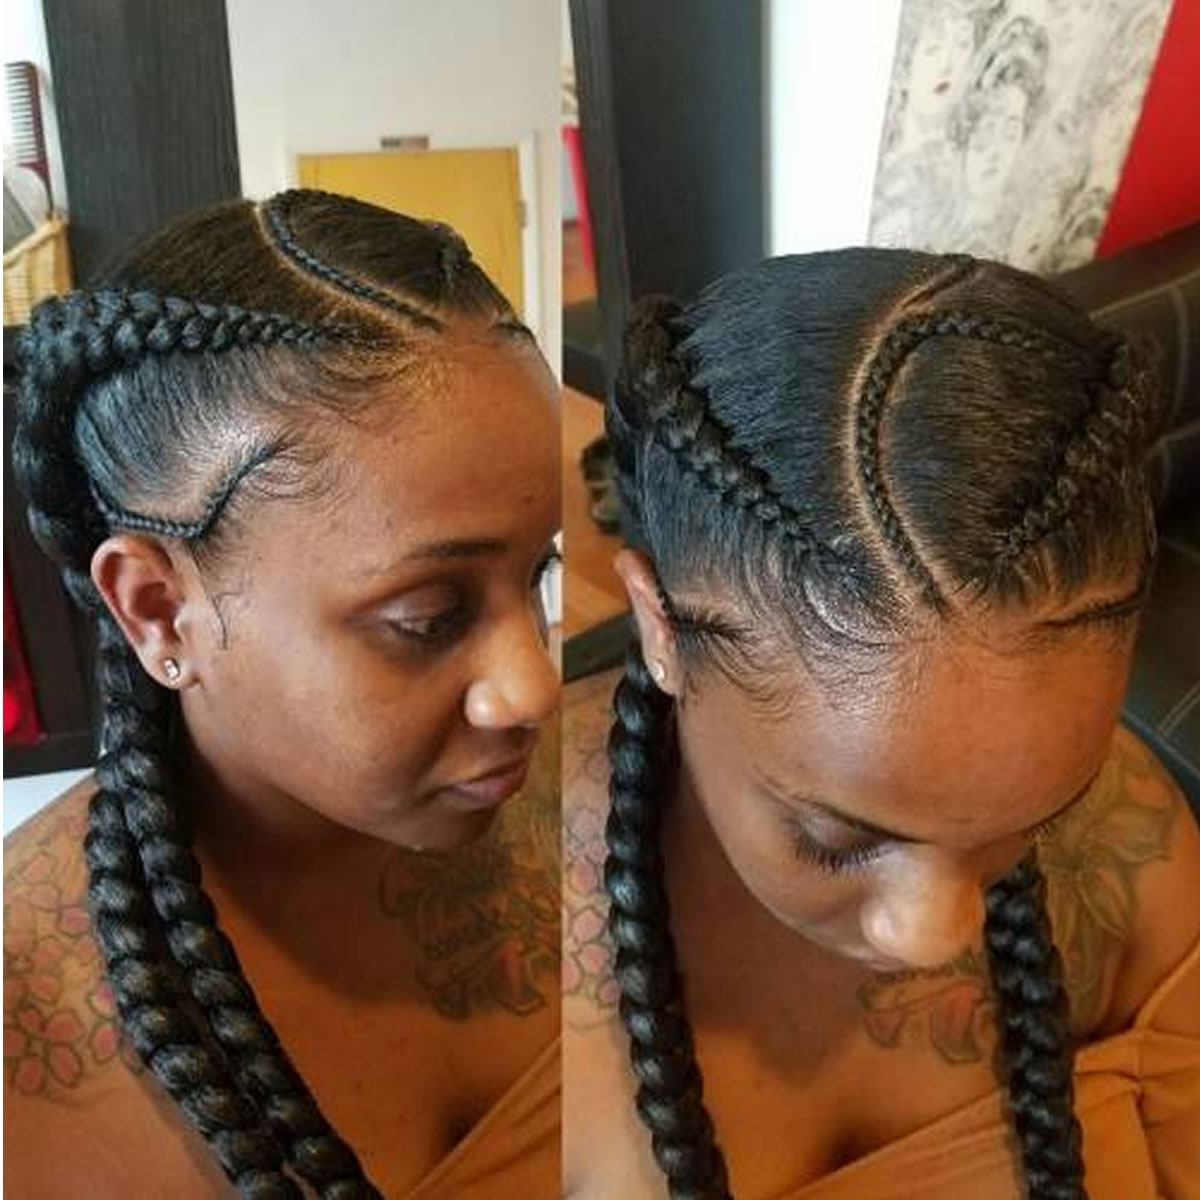 Curvy Braids And Long Tails – Hairstyles With Most Current Long Curvy Braids Hairstyles (View 8 of 15)